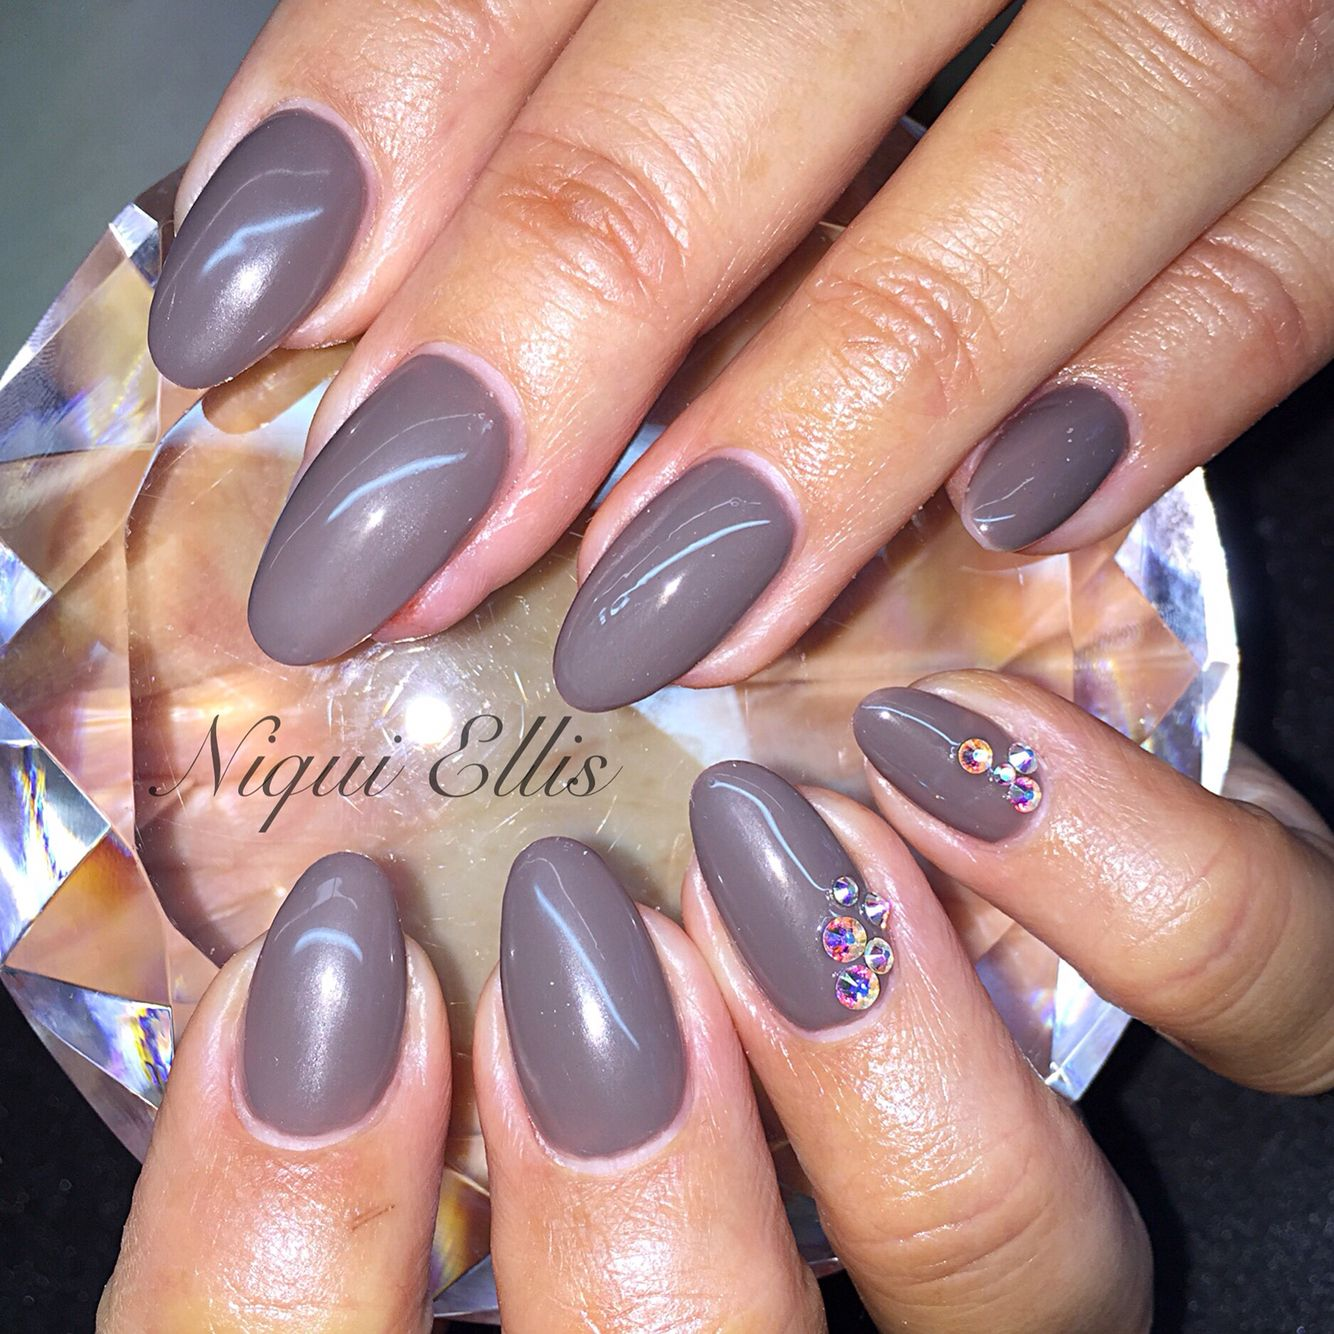 Acrylic nails with gel polish. Jewels added for detail on